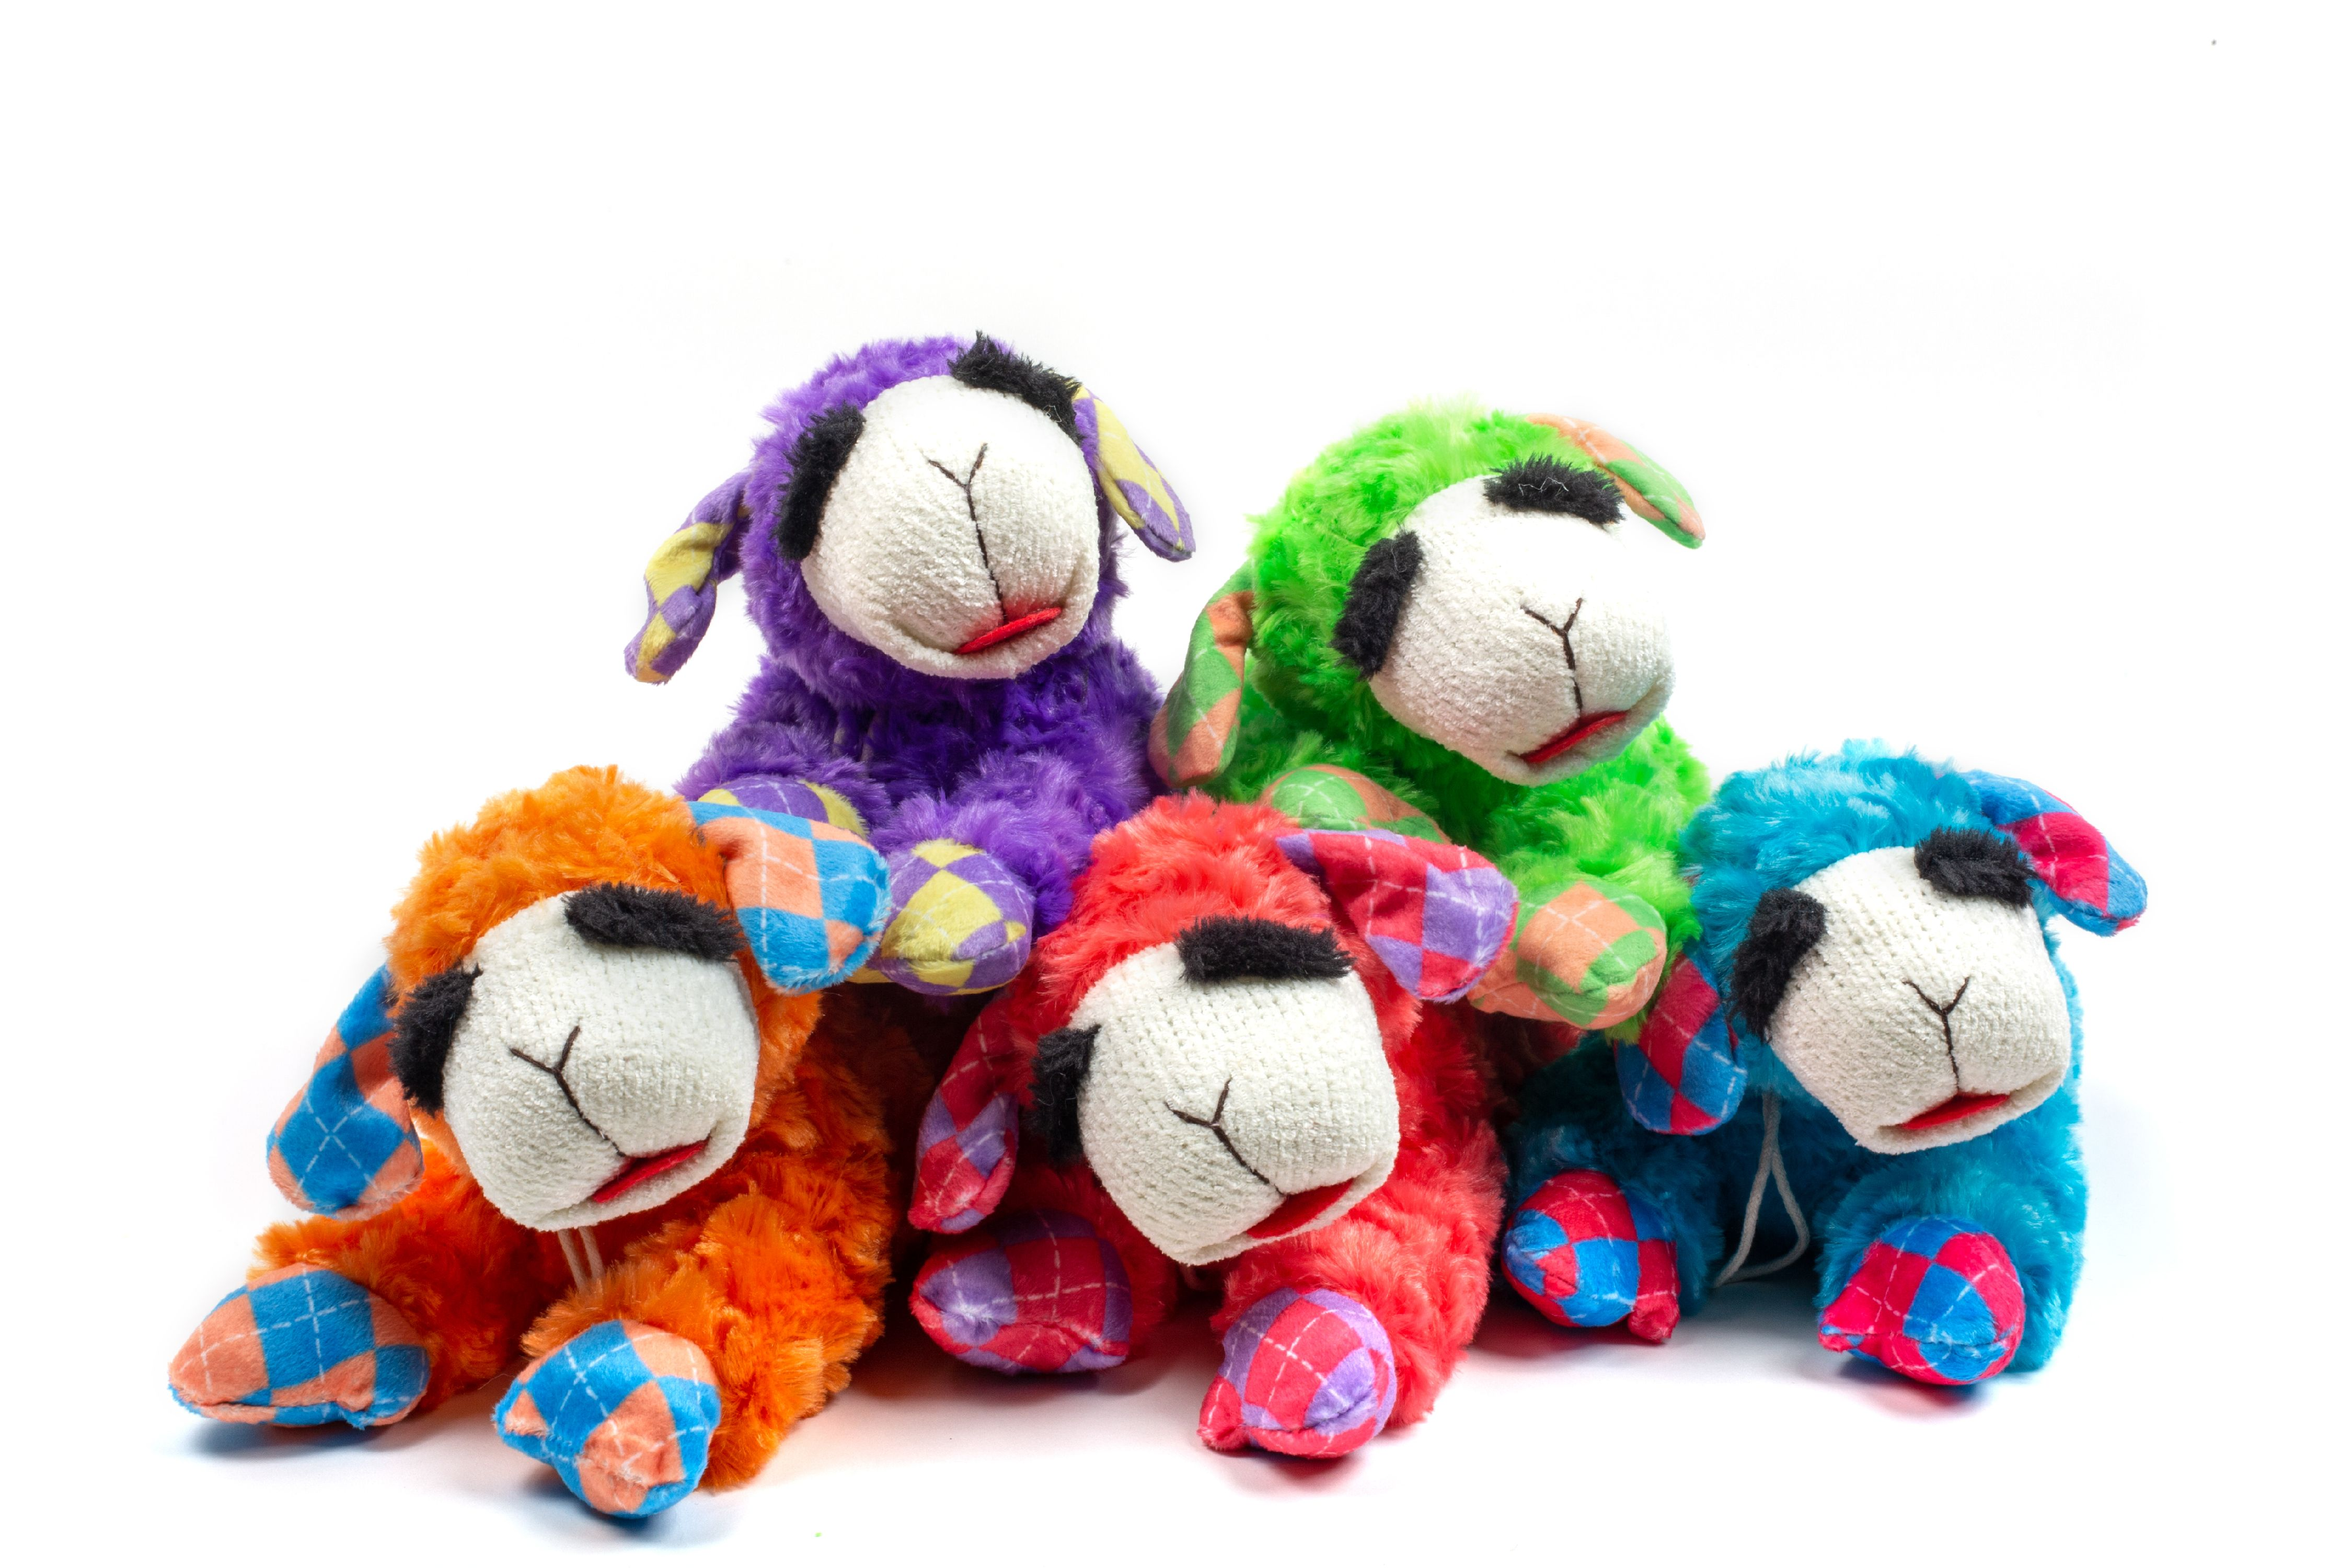 Multipet Plush Lamb Chop Dog Toy with Squeaker Assorted NEON Colors (Toy May Vary) by Multipet International